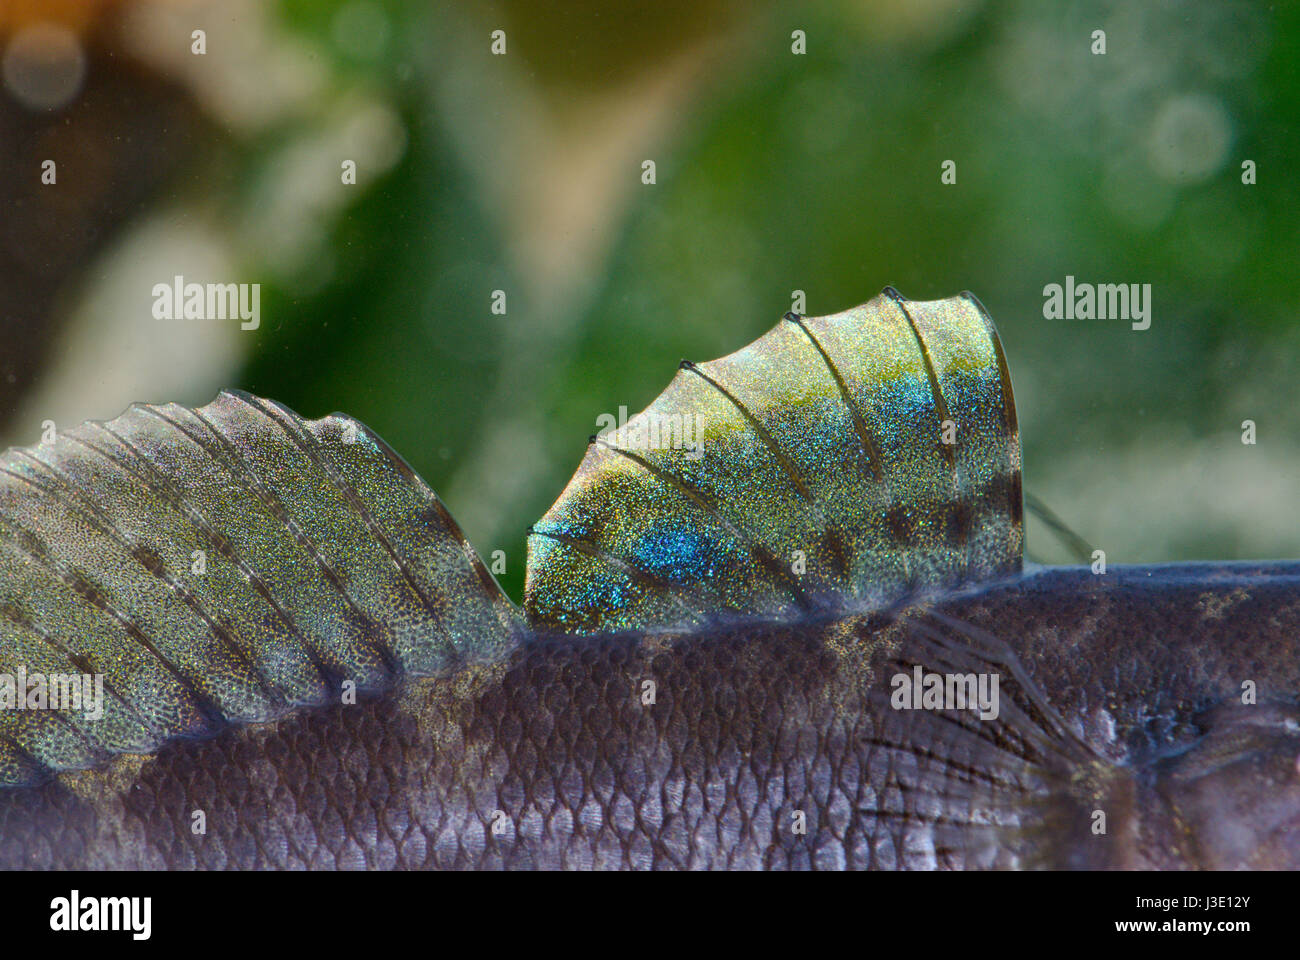 Male Rock goby (Gobius paganellus) Dorsal Fins in Breeding Colours - Stock Image